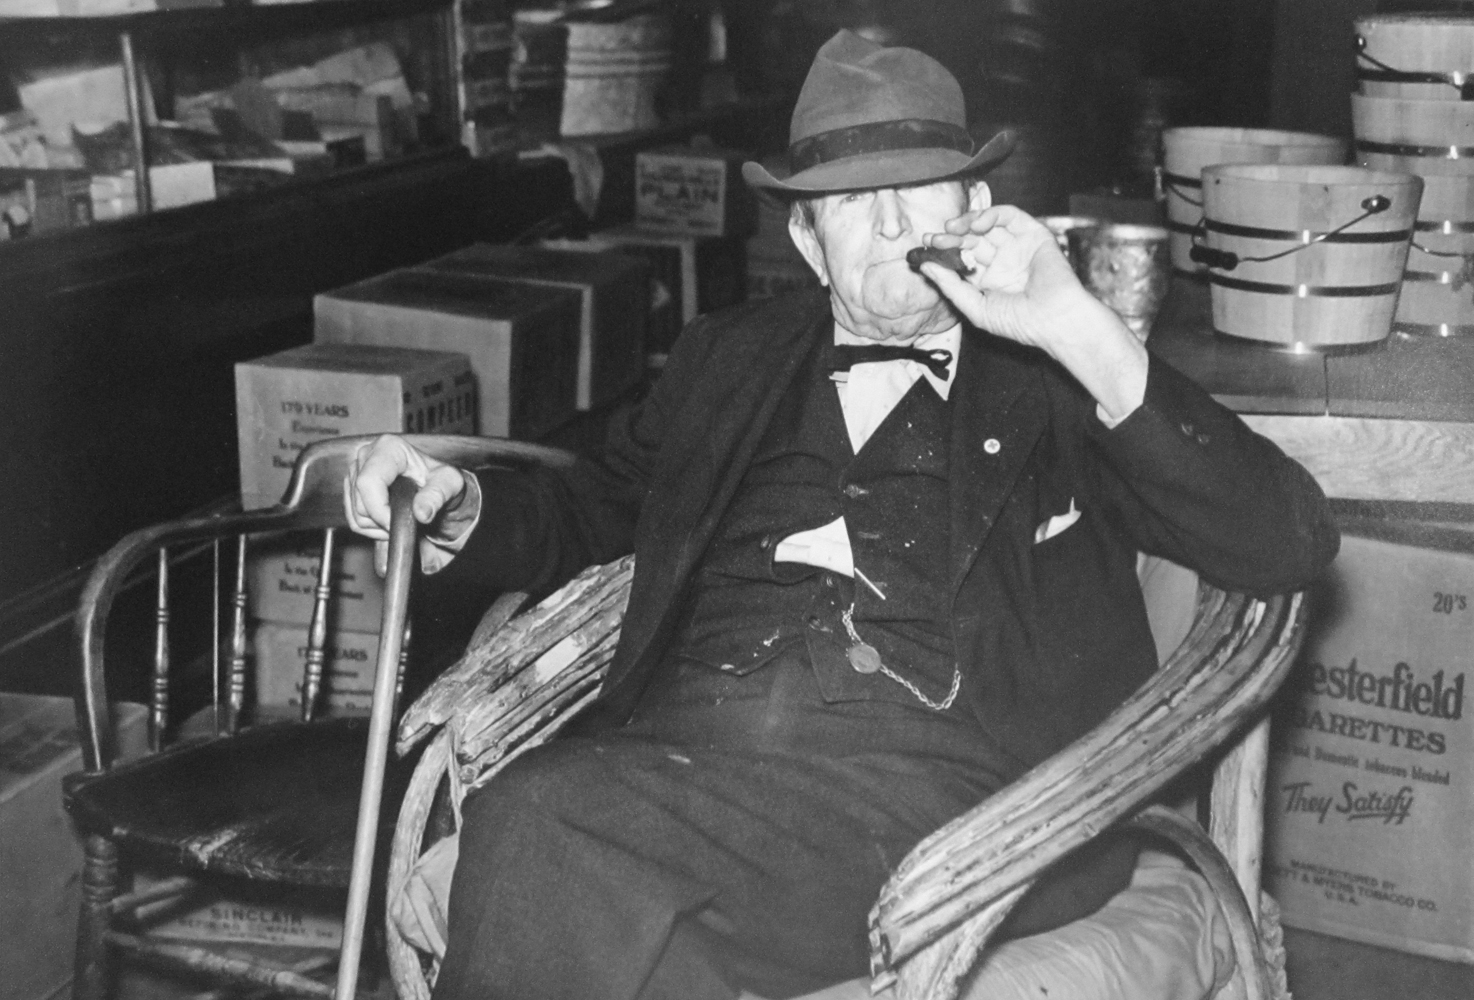 """Marion Post Wolcott, Mr. Whitely in his general store. He also owns a bank, cotton exchange, and real estate. He was the first man to settle in town; he cut down trees and pulled out stumps for """"main"""" street. Wendell, North Carolina, 1940, gelatin silver print, signed, 11 x 14 inches"""